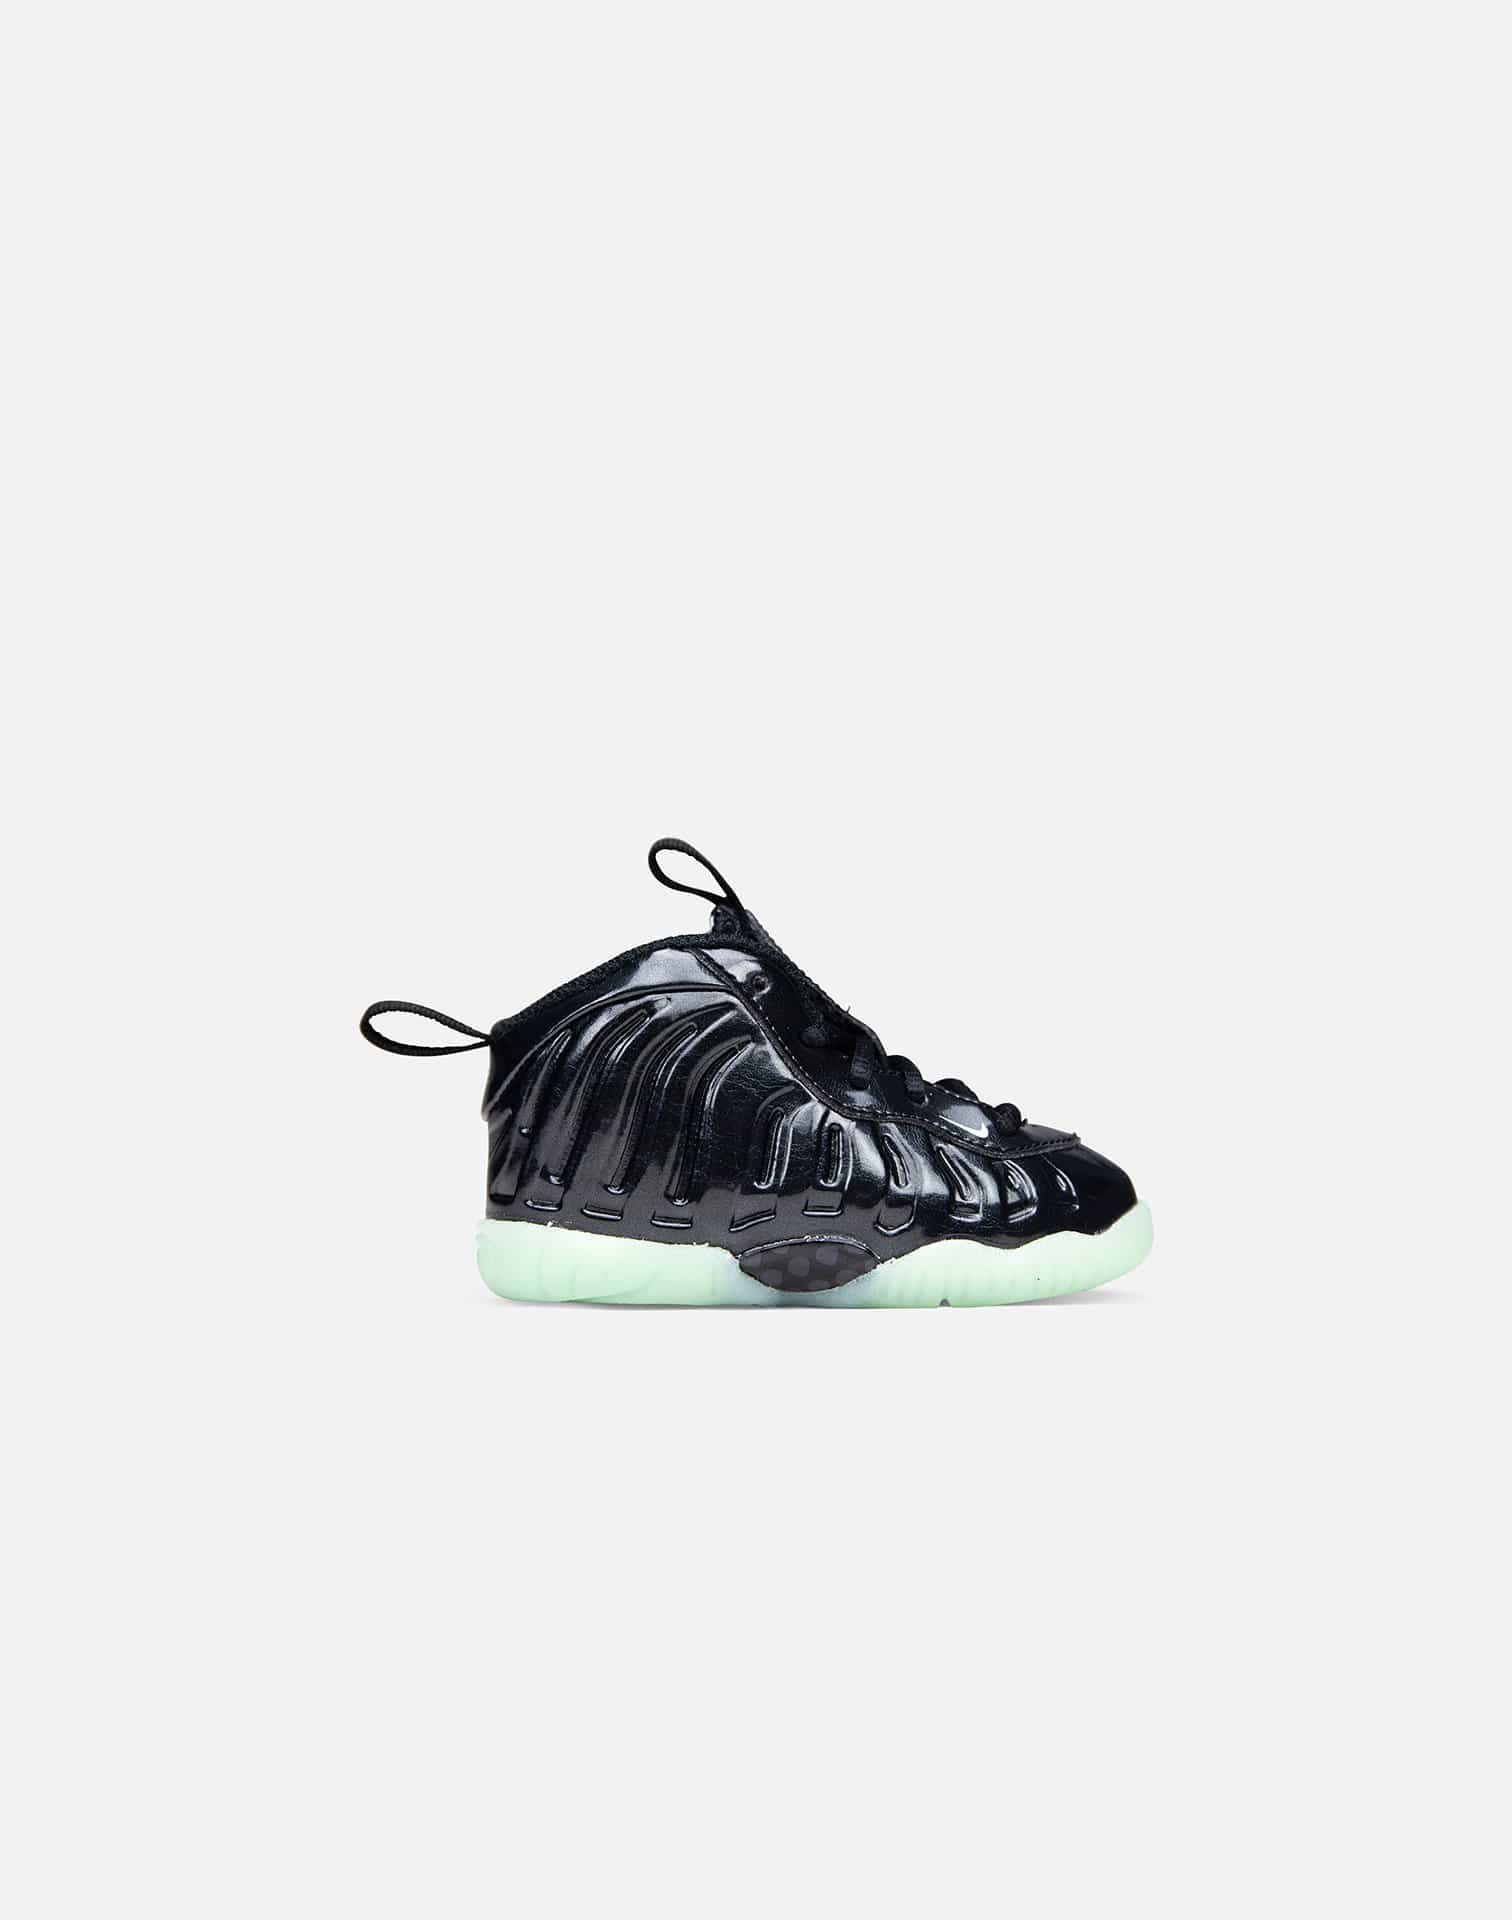 Nike LIL' POSITE ONE 'ALL-STAR' INFANT